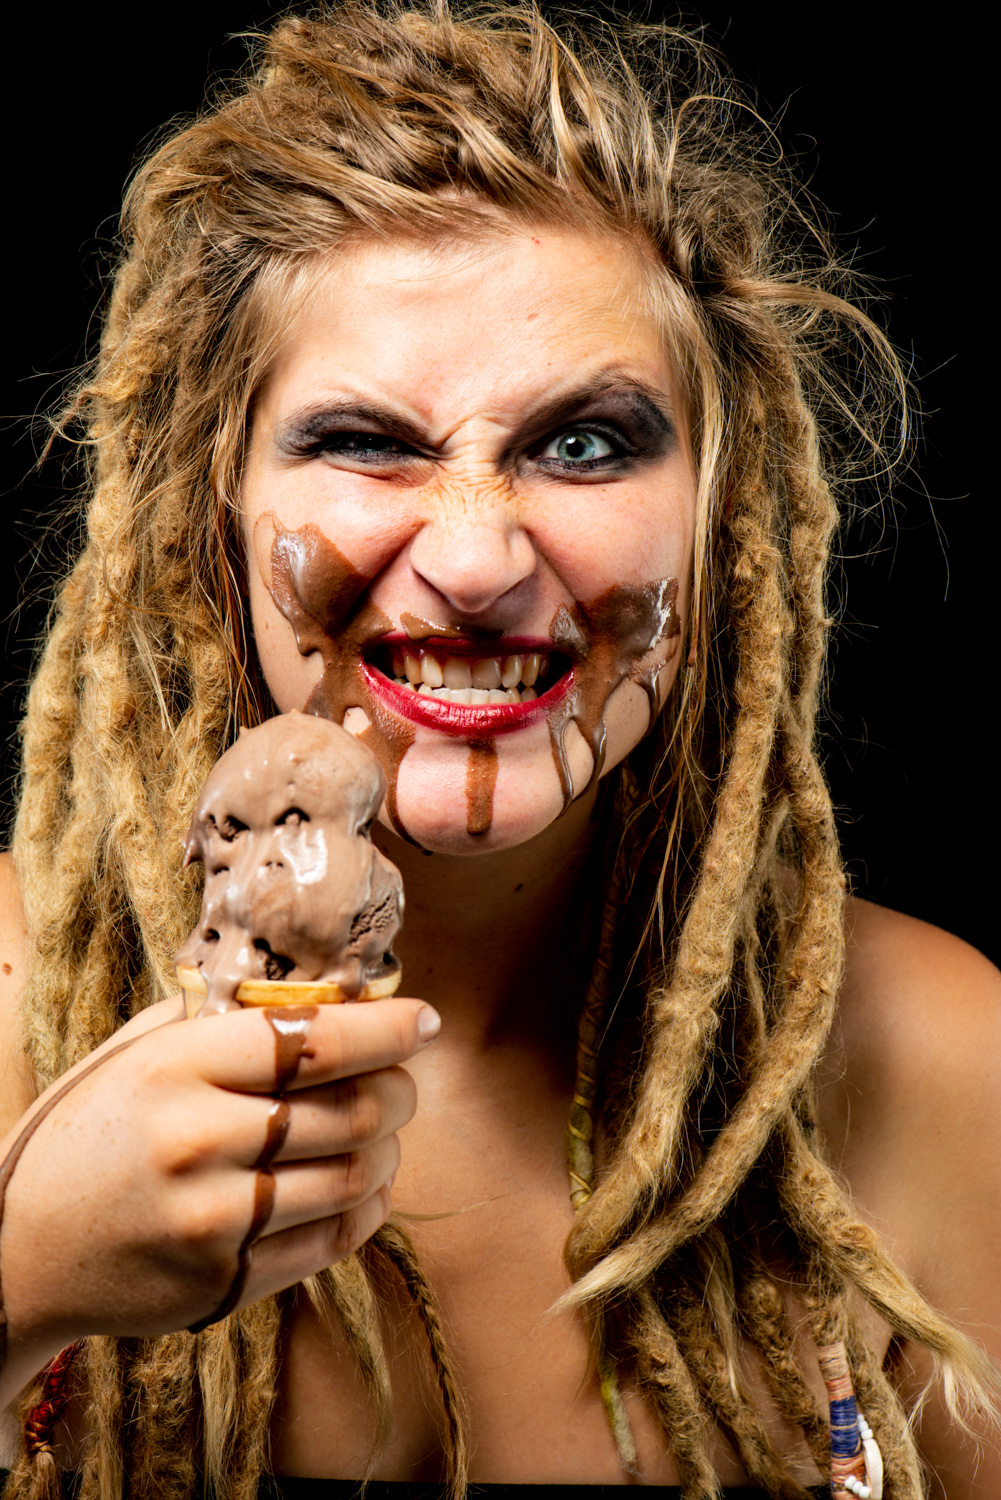 Woman with a melting ice creammaking someone comfortable